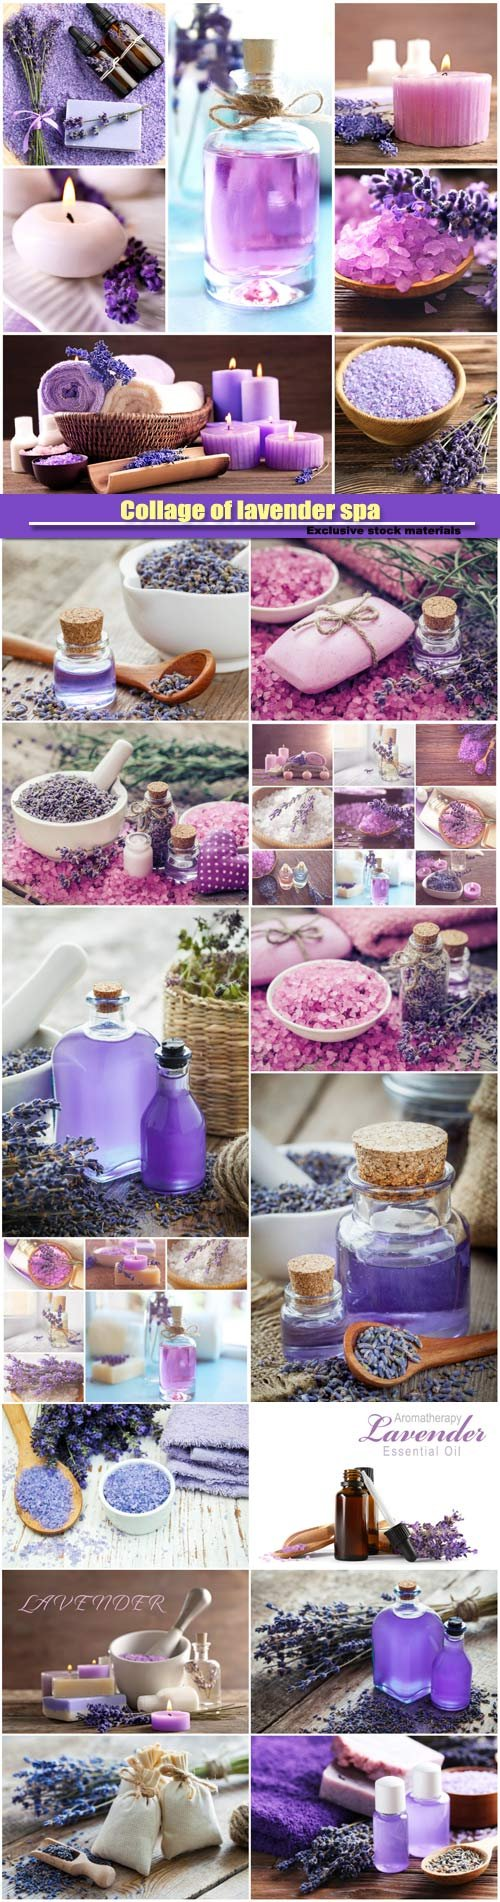 Collage of lavender spa, beauty treatment concept